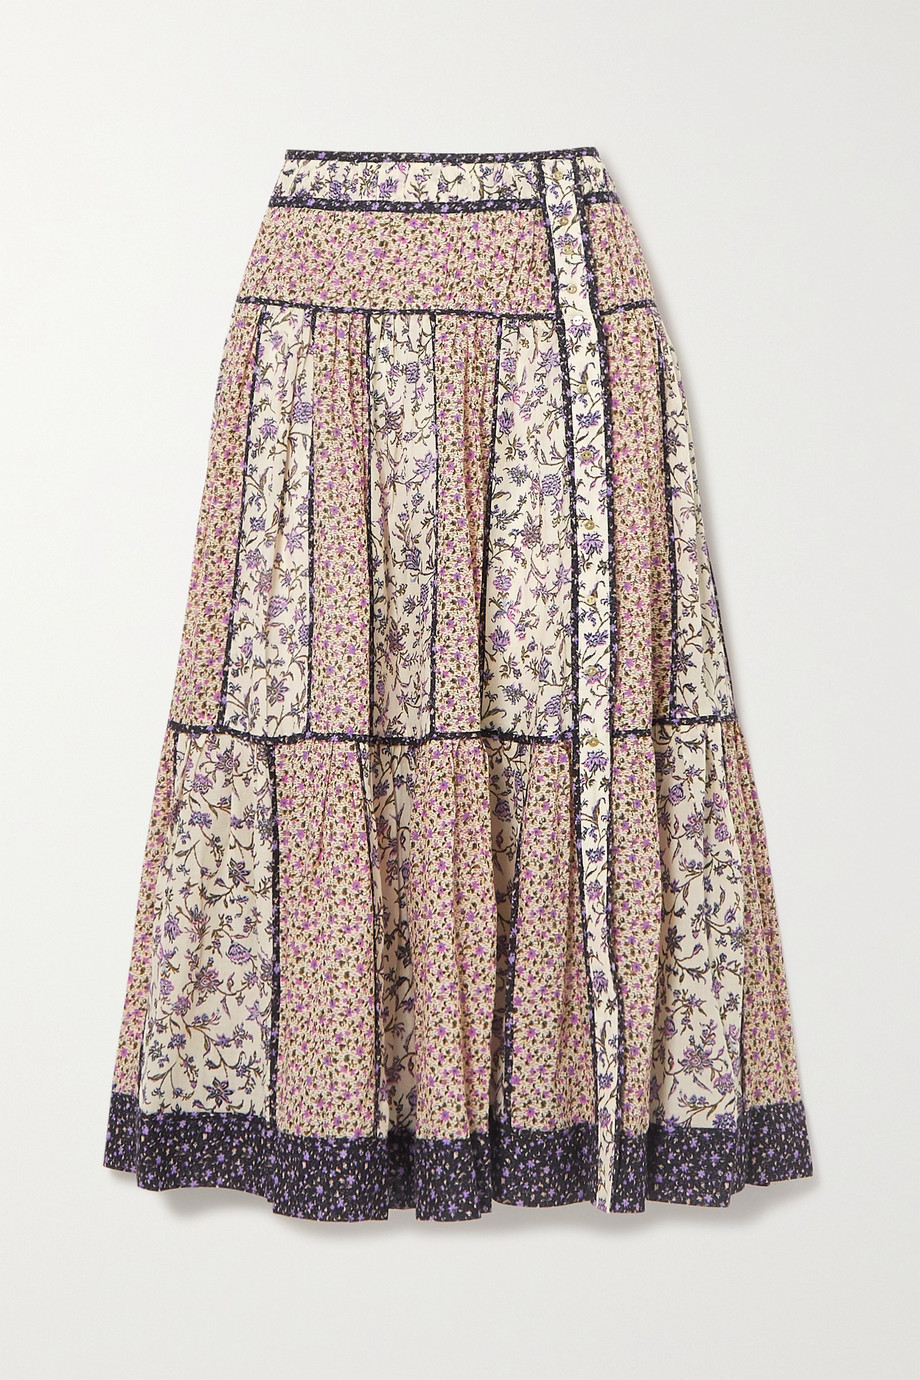 Ulla Johnson Josephine tiered floral-print cotton-blend voile midi skirt